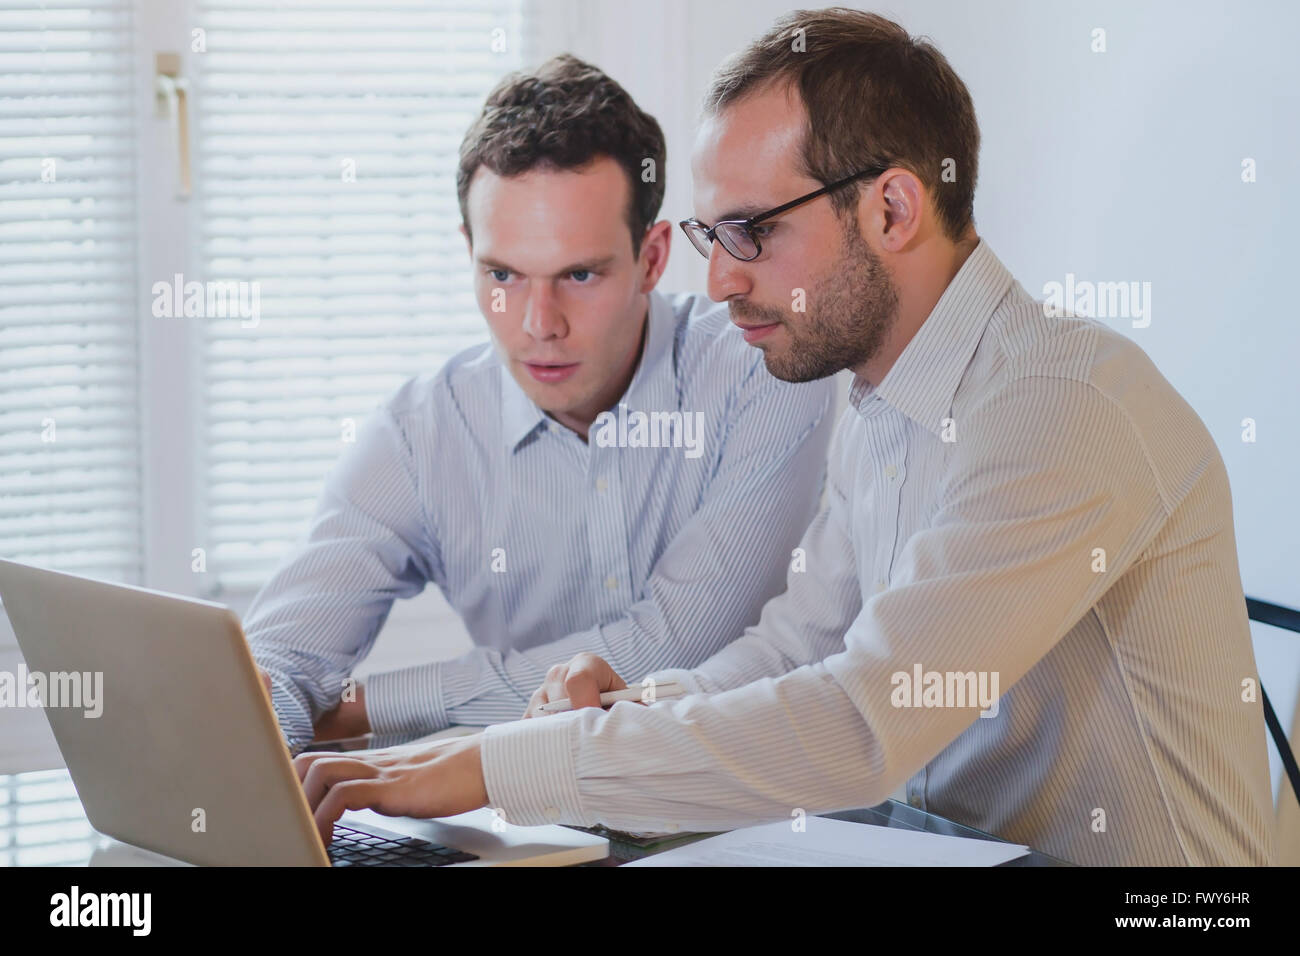 financial analysis and project management, business  people working with computer in modern office interior - Stock Image